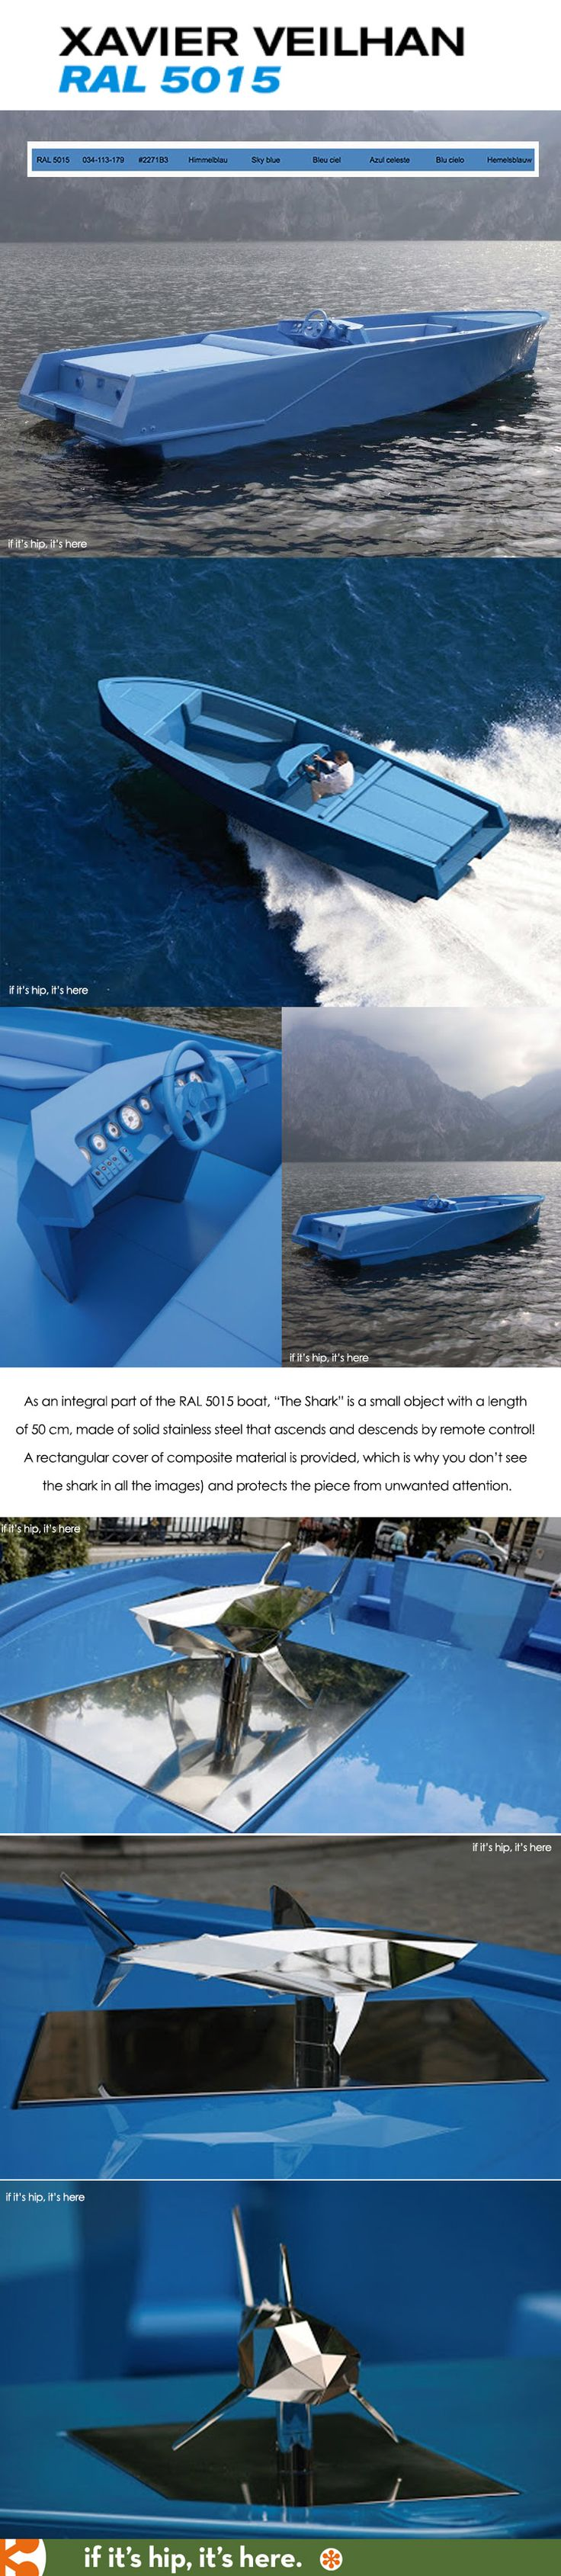 the ral 5015 motor boat by artist xavier veilhan is named after its color and has